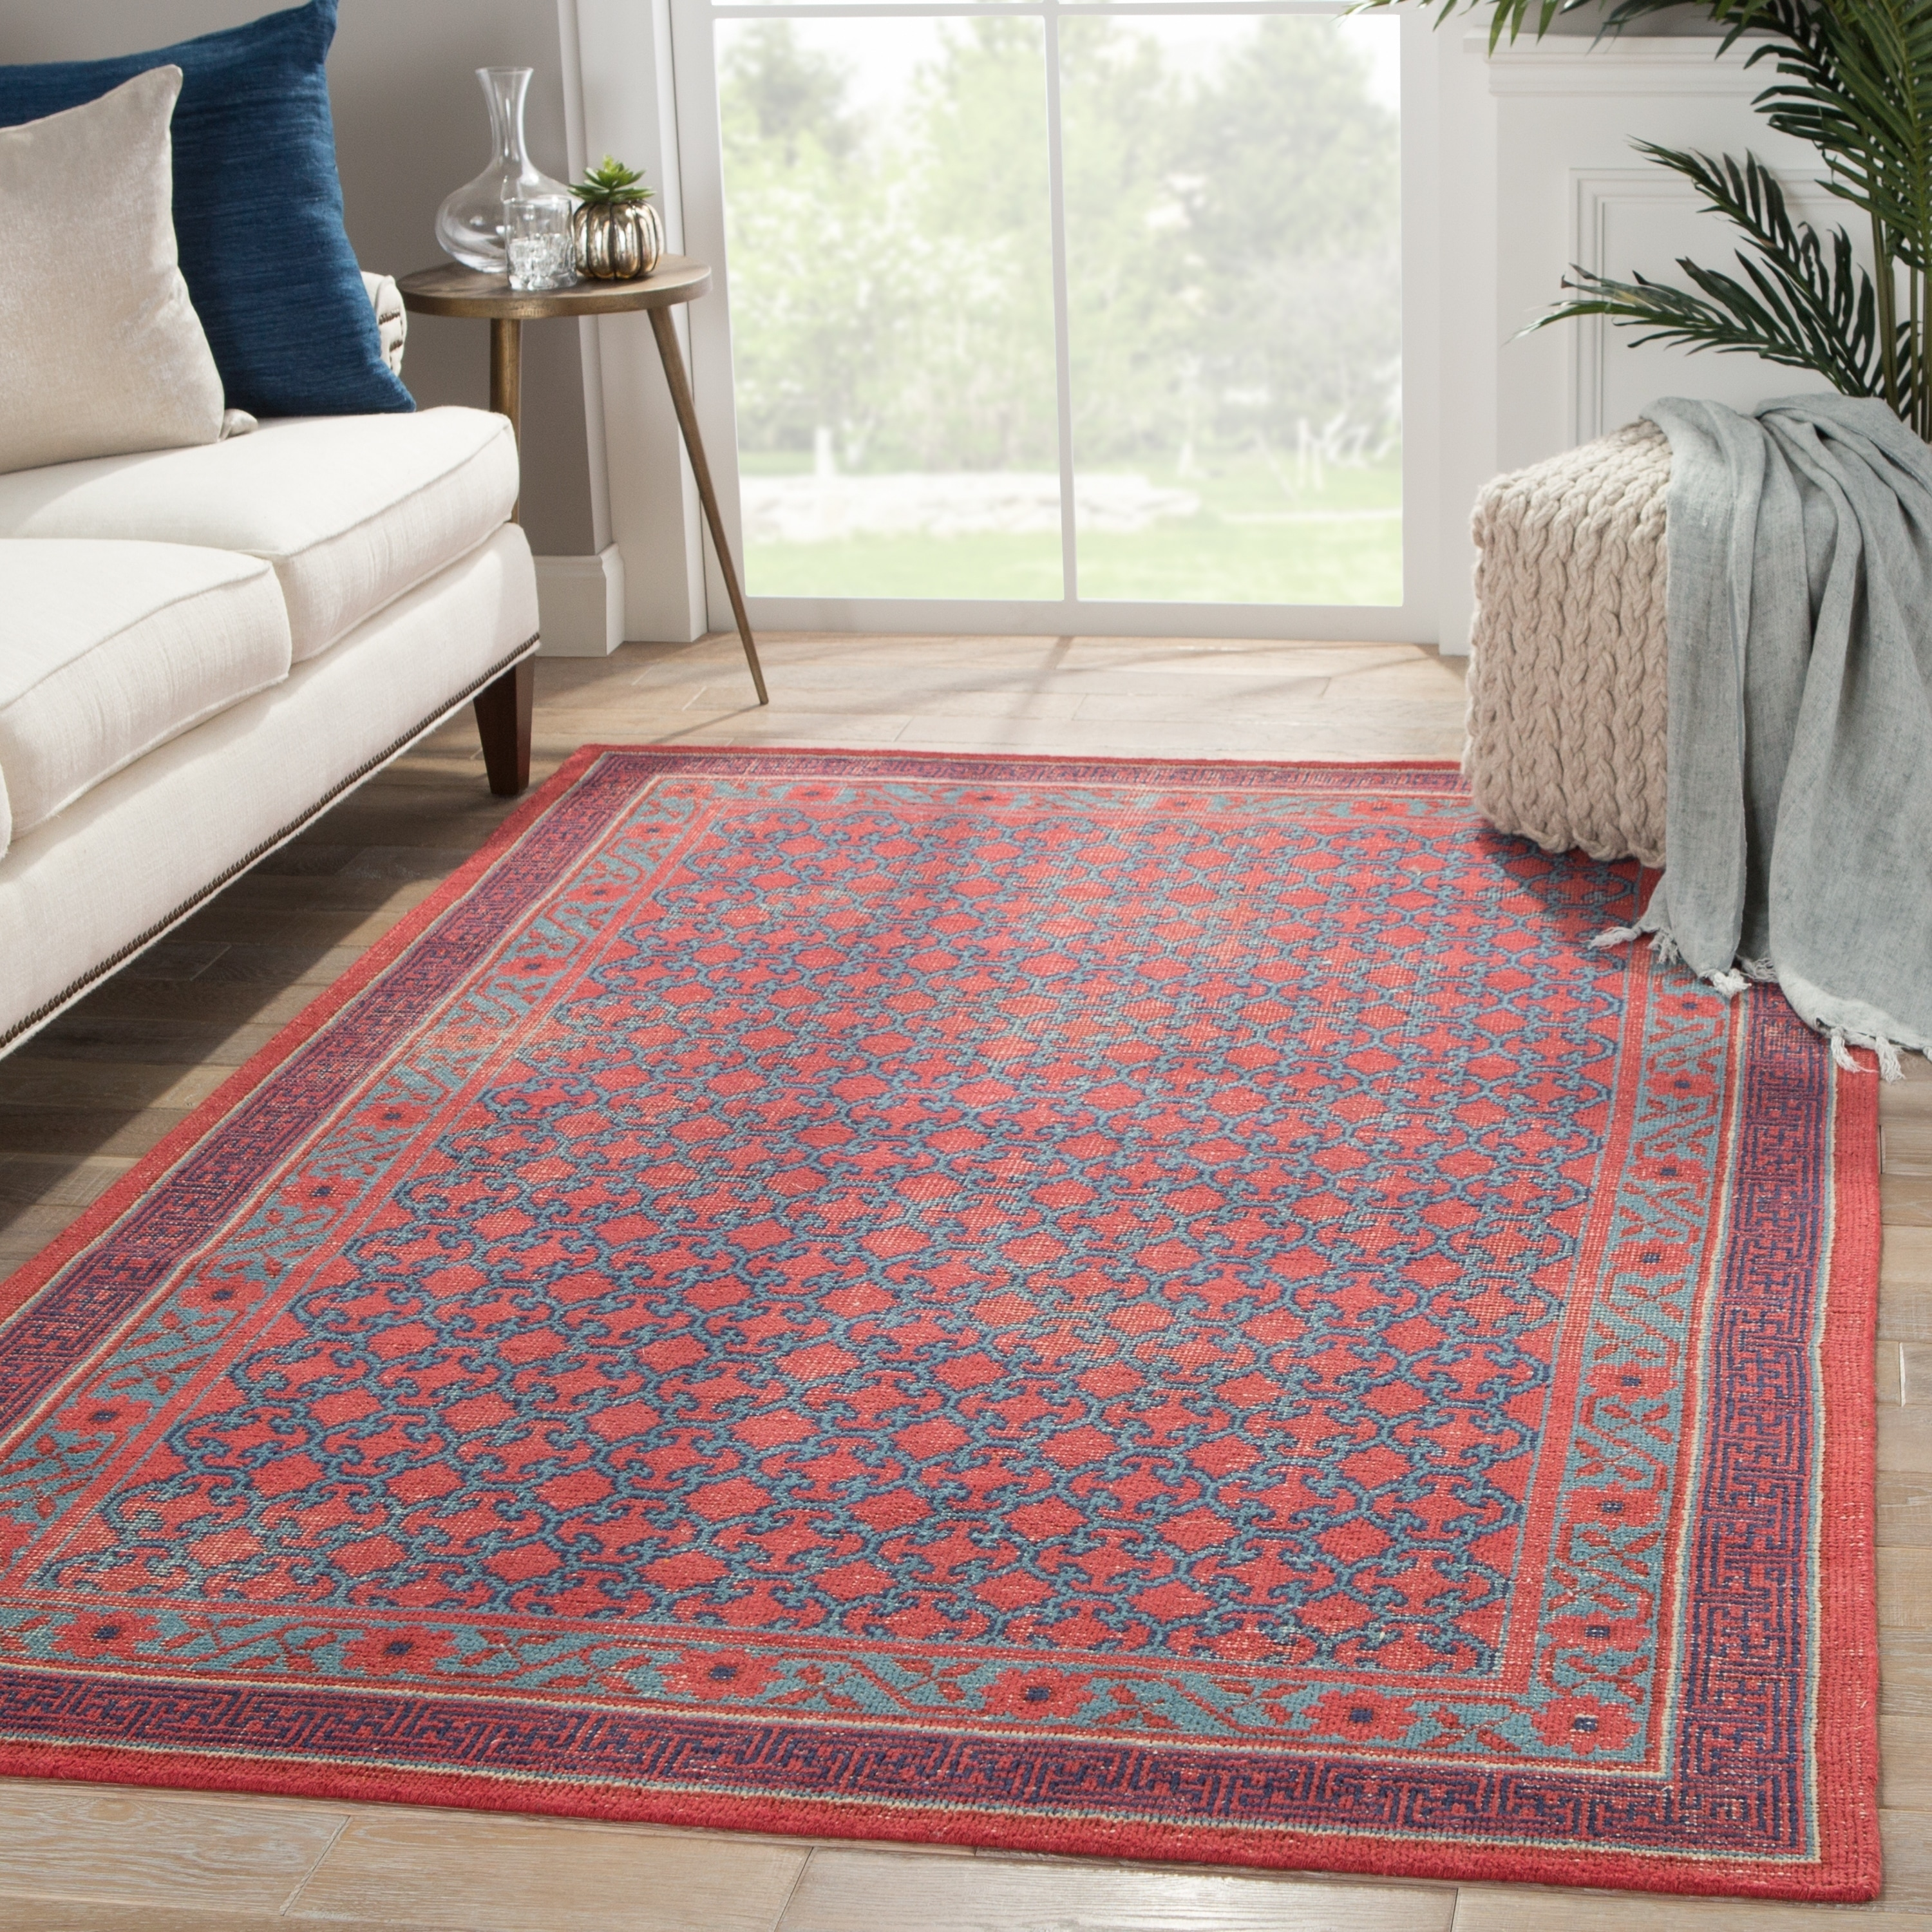 Juniper Home Hand-Knotted Borders Red Area Rug (8' X 10')...